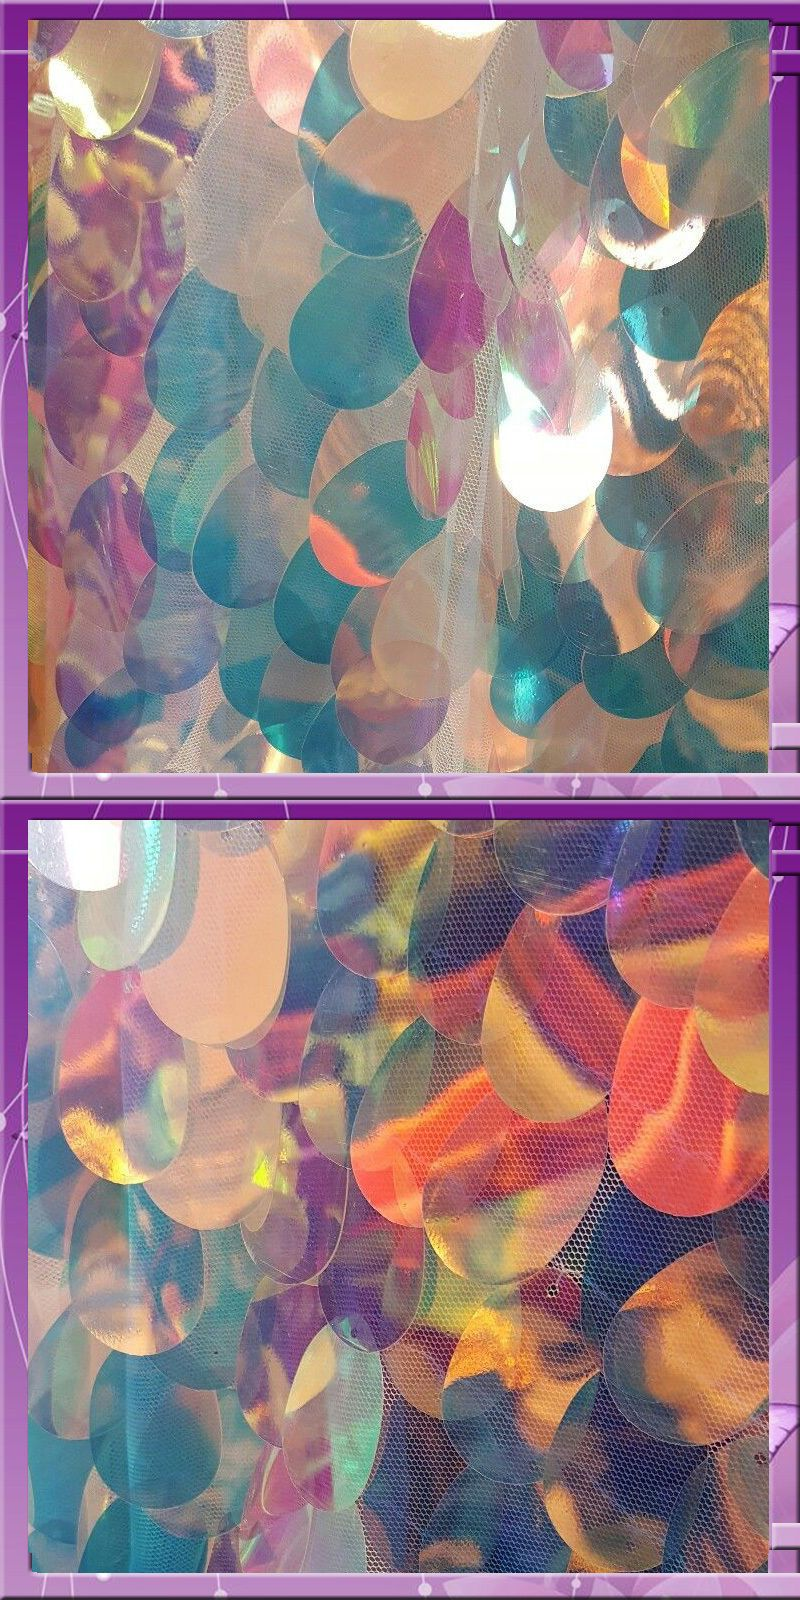 Fabric 28162: Big Sequin Hologram Fabric 45 Inches Wide Sold By The Yard White -> BUY IT NOW ONLY: $35 on eBay!